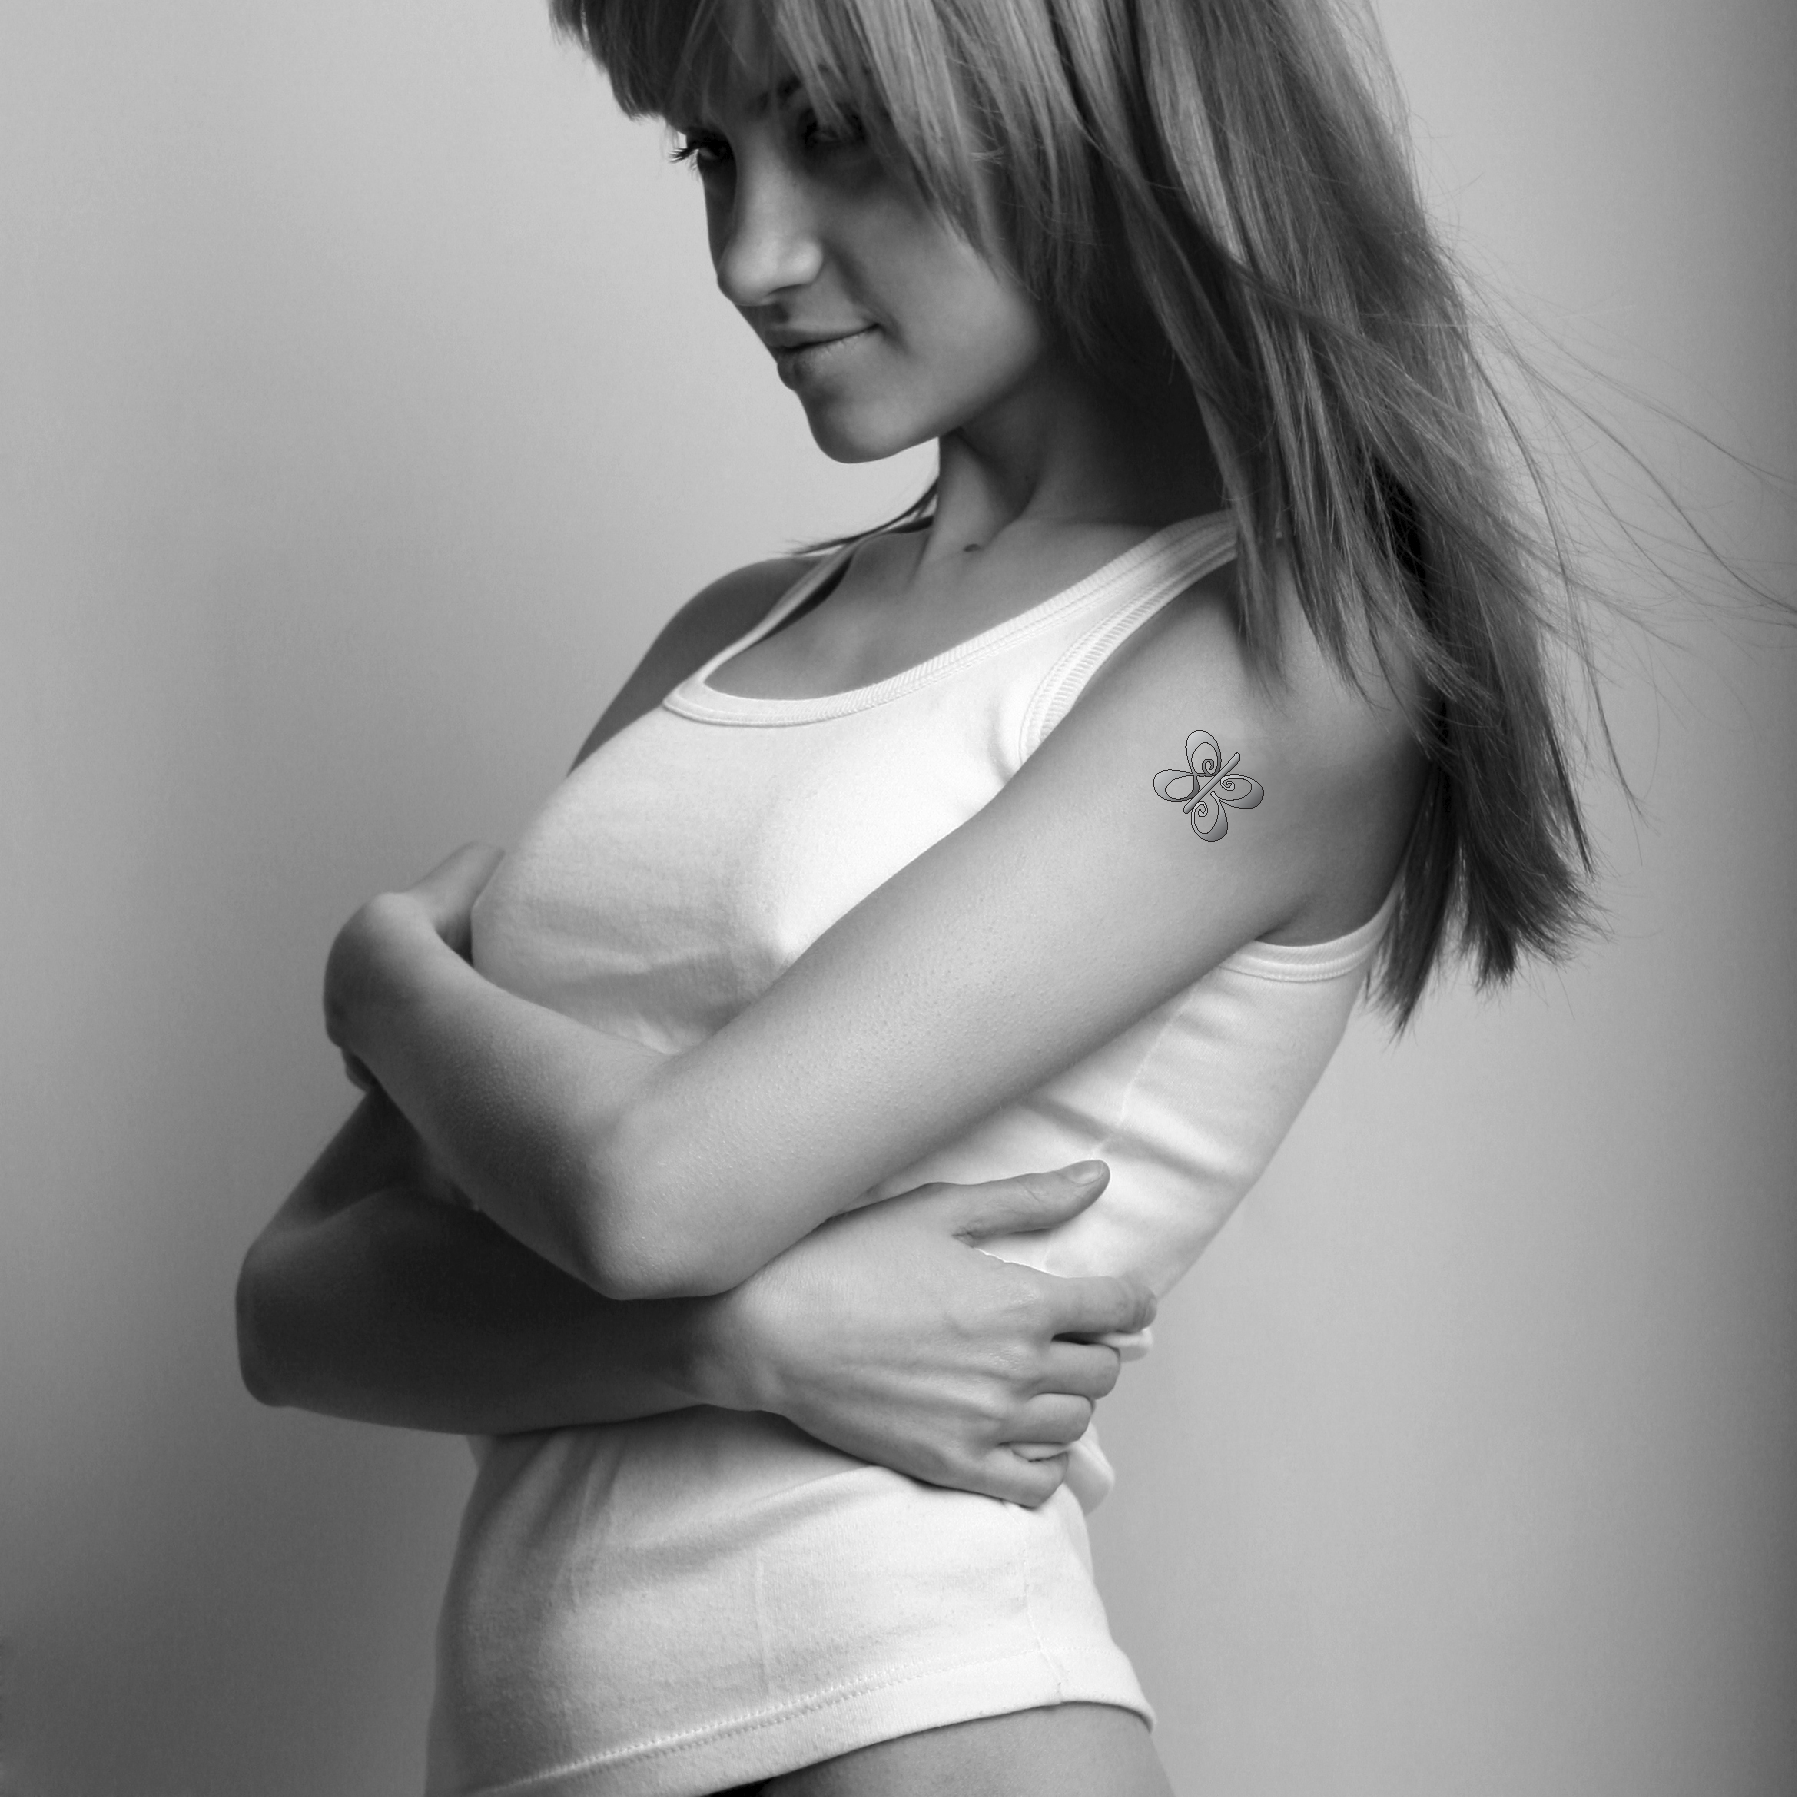 Girl w Bfly Tattoo.png